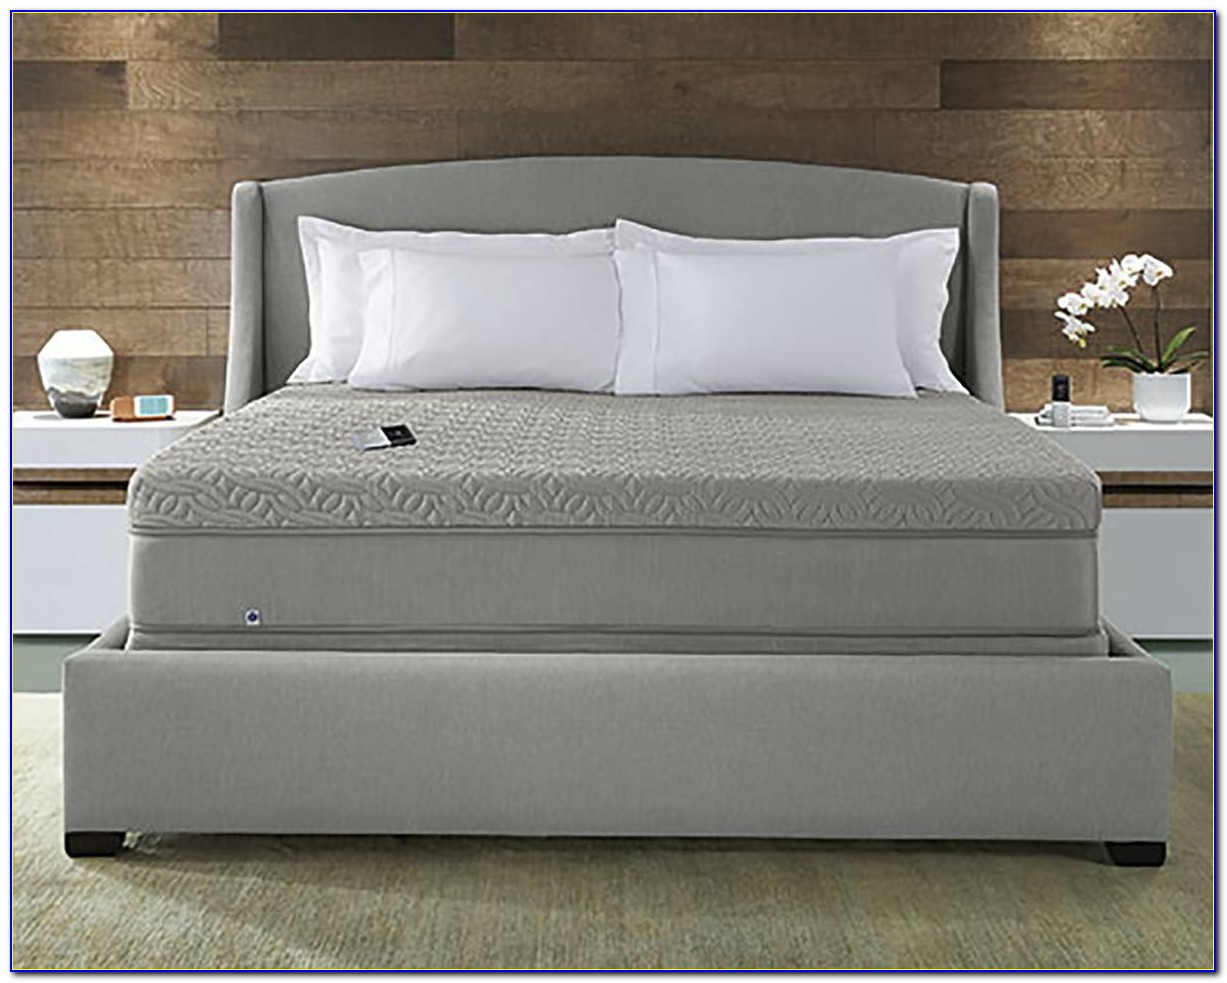 Sleep Number Bed Headboards